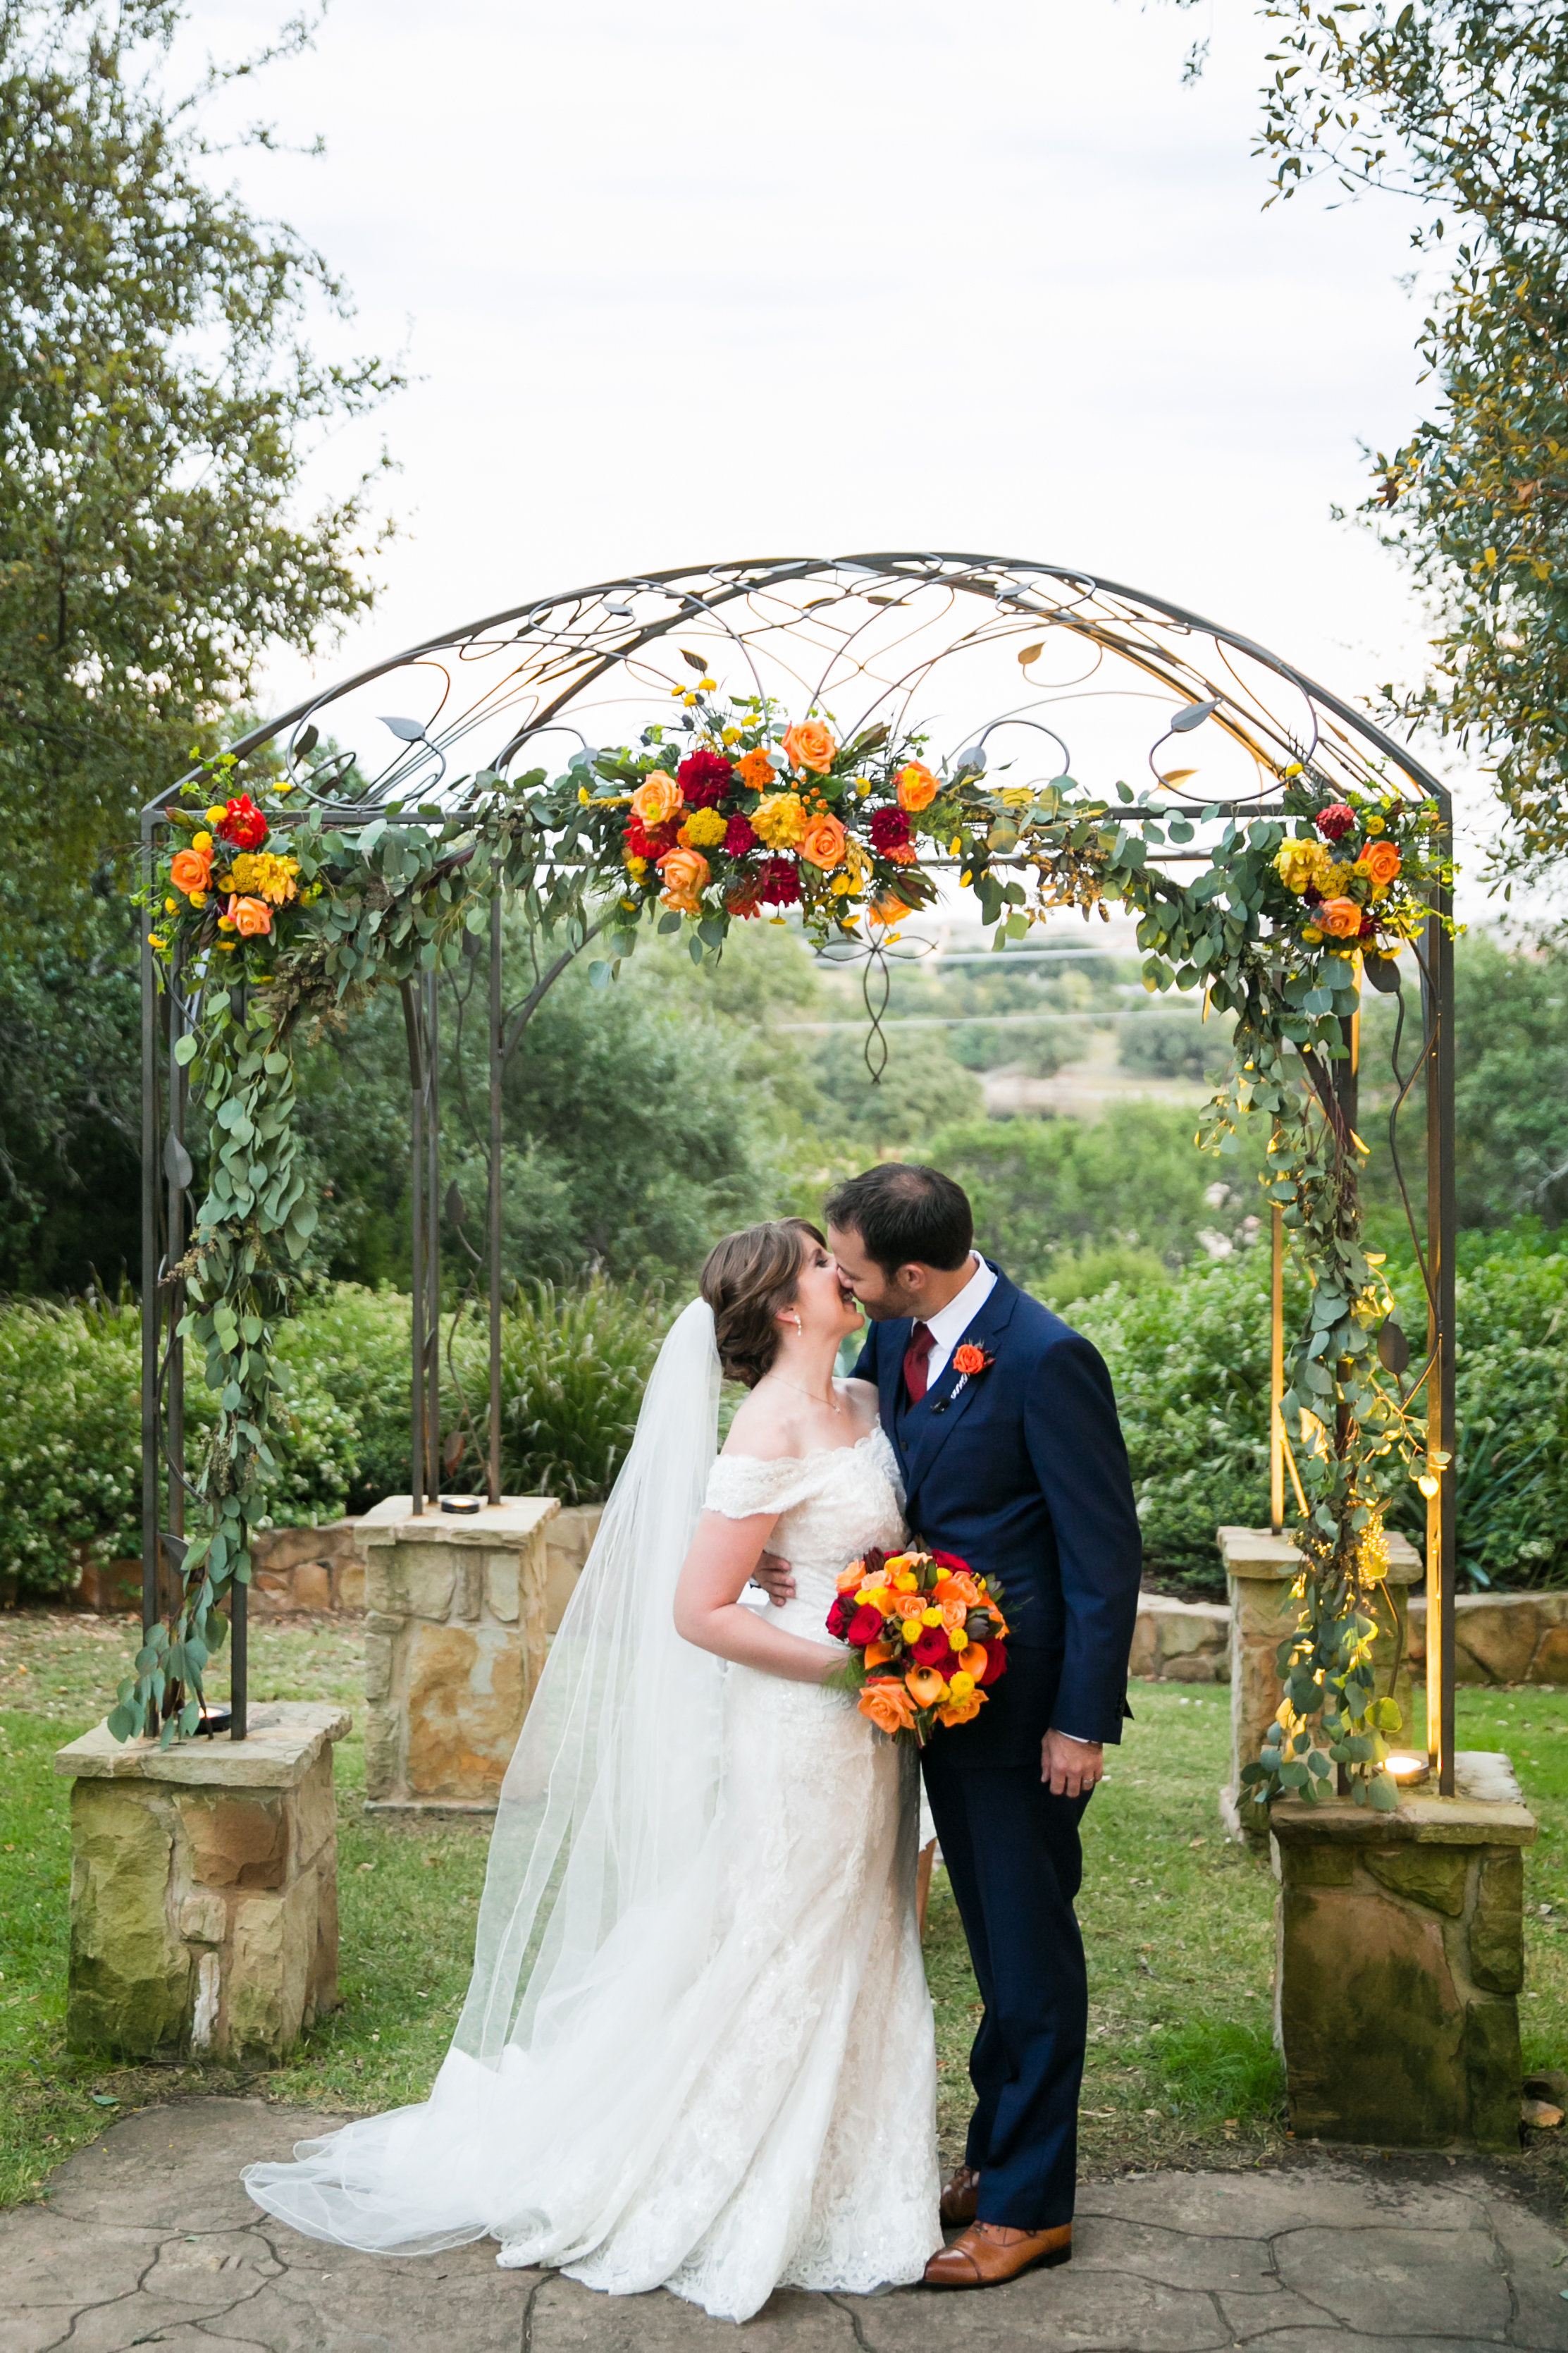 A bride and groom kiss underneath their wedding ceremony arbor at a Georgetown, Texas wedding venue. Photo by Tank Goodness Photography.